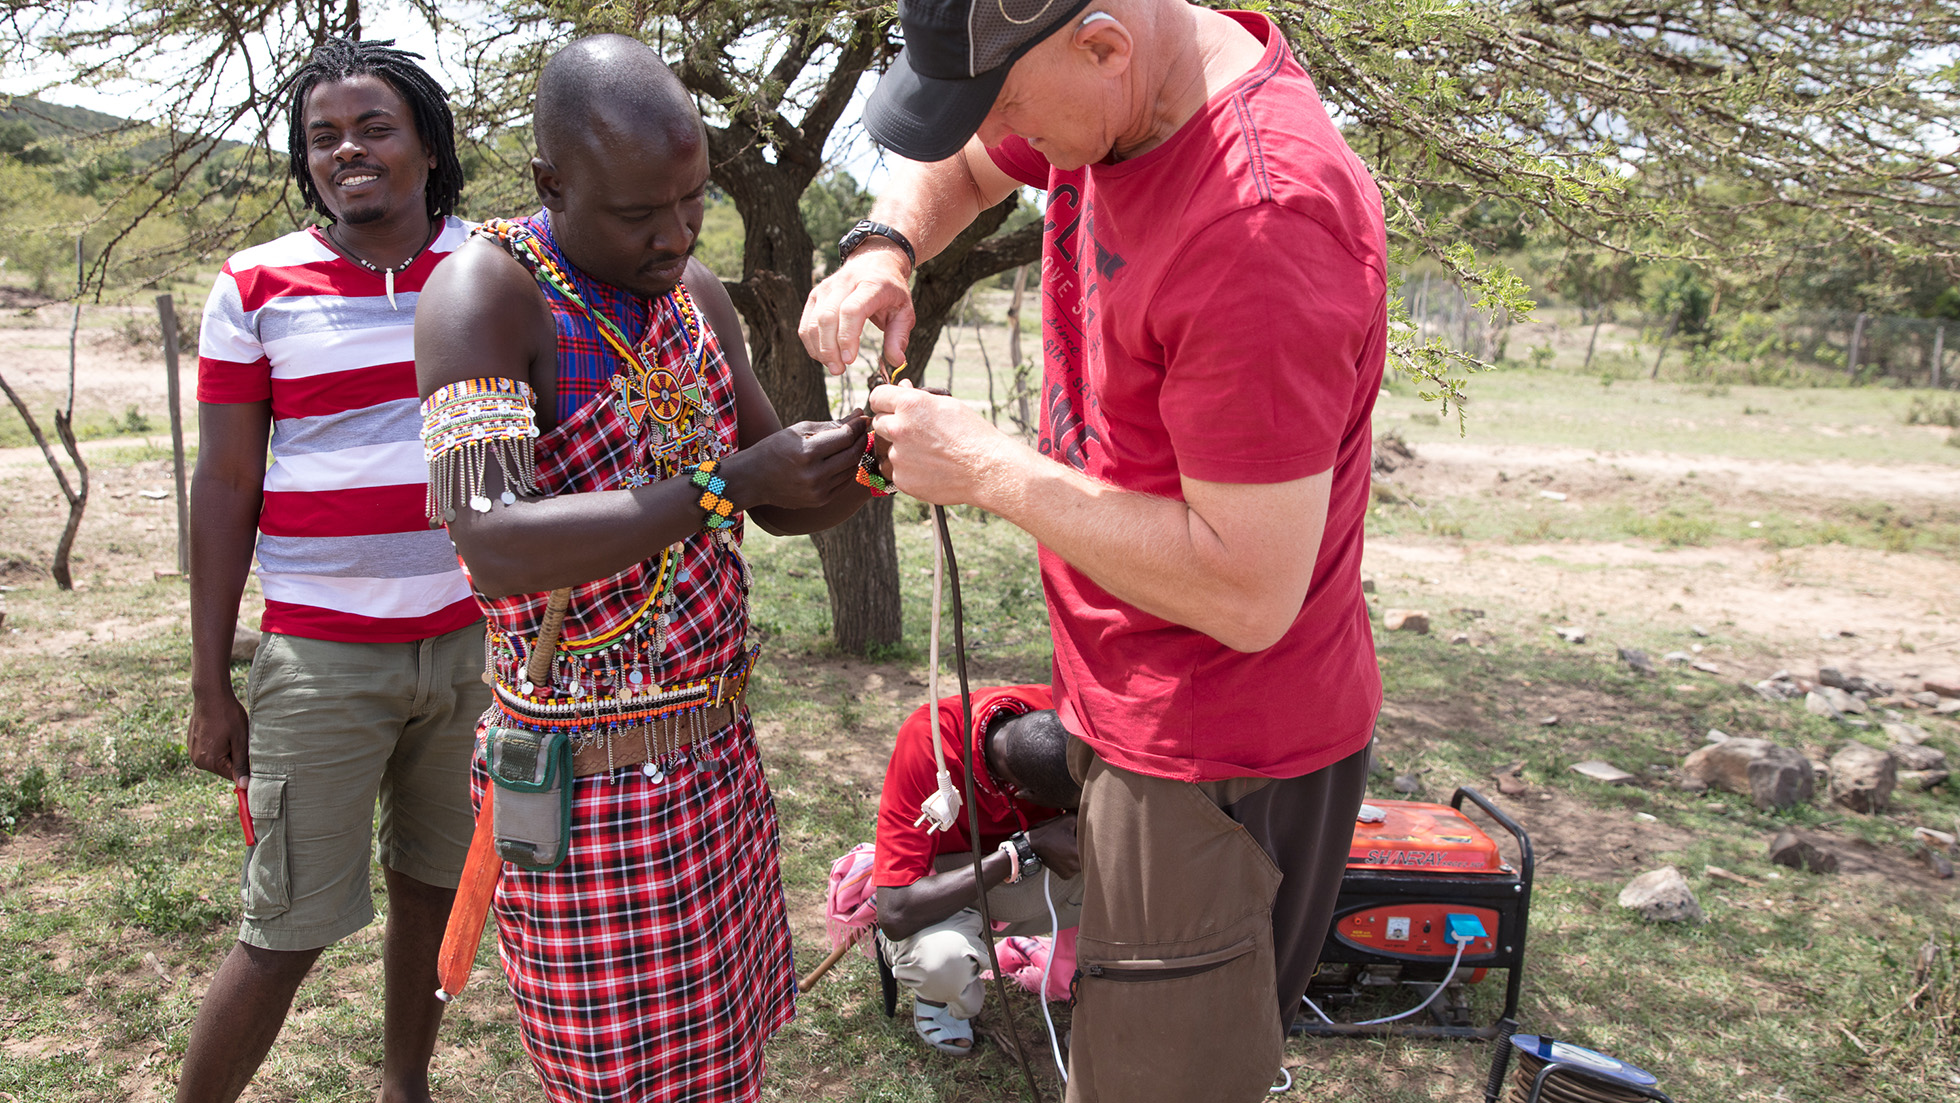 Sometimes improvisation is needed during field work. As we left the generator in Tanzania and borrowed another one in Kenya, the cables we brought did not fit. The machete showed as a very useful tool to help fix this, and so the day was saved.